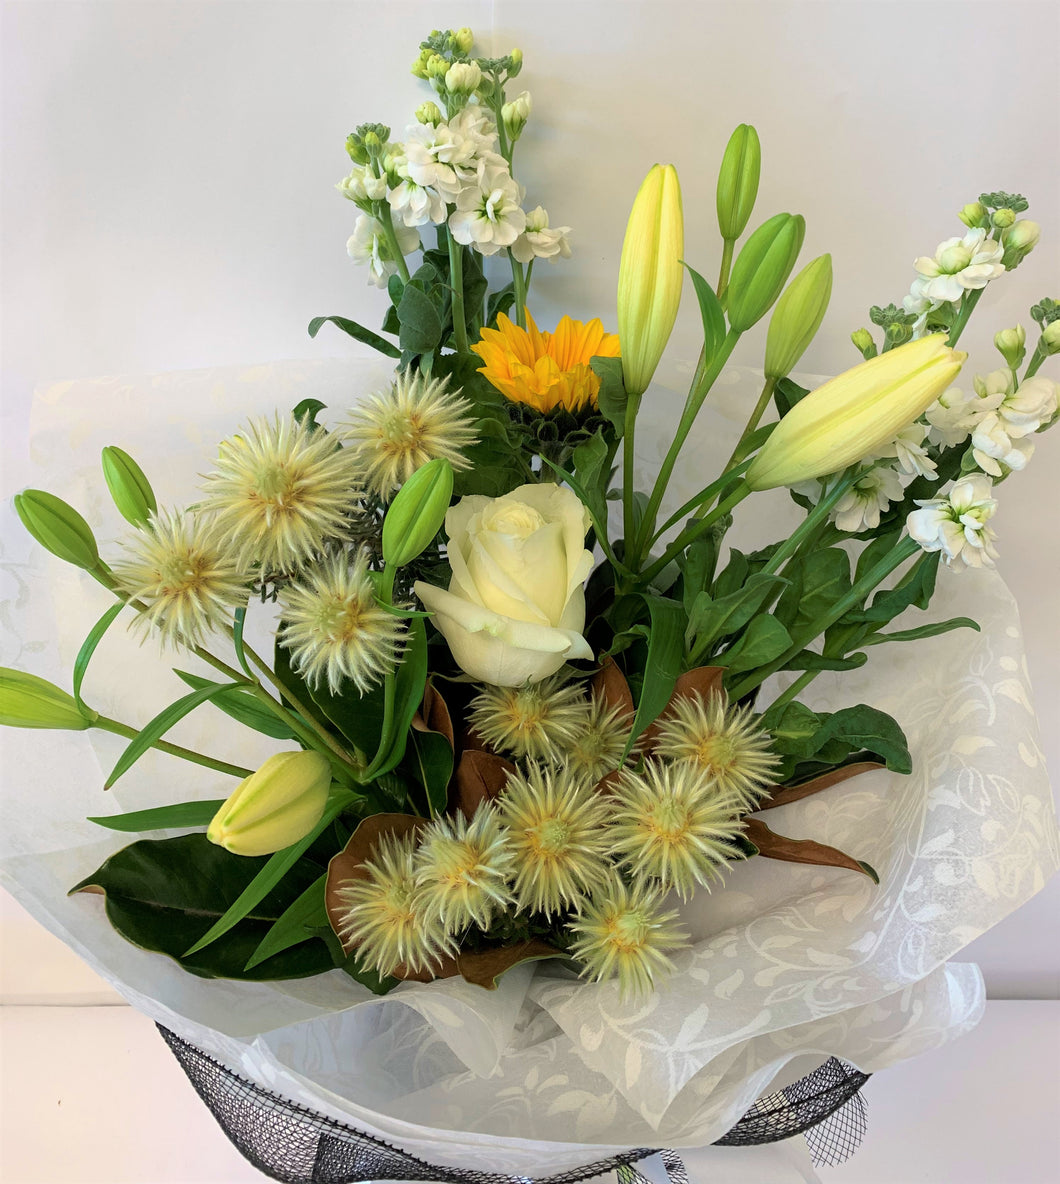 Green, white and yellow hand-tied flowers for sympathy or get well      Delivery throughout New Zealand